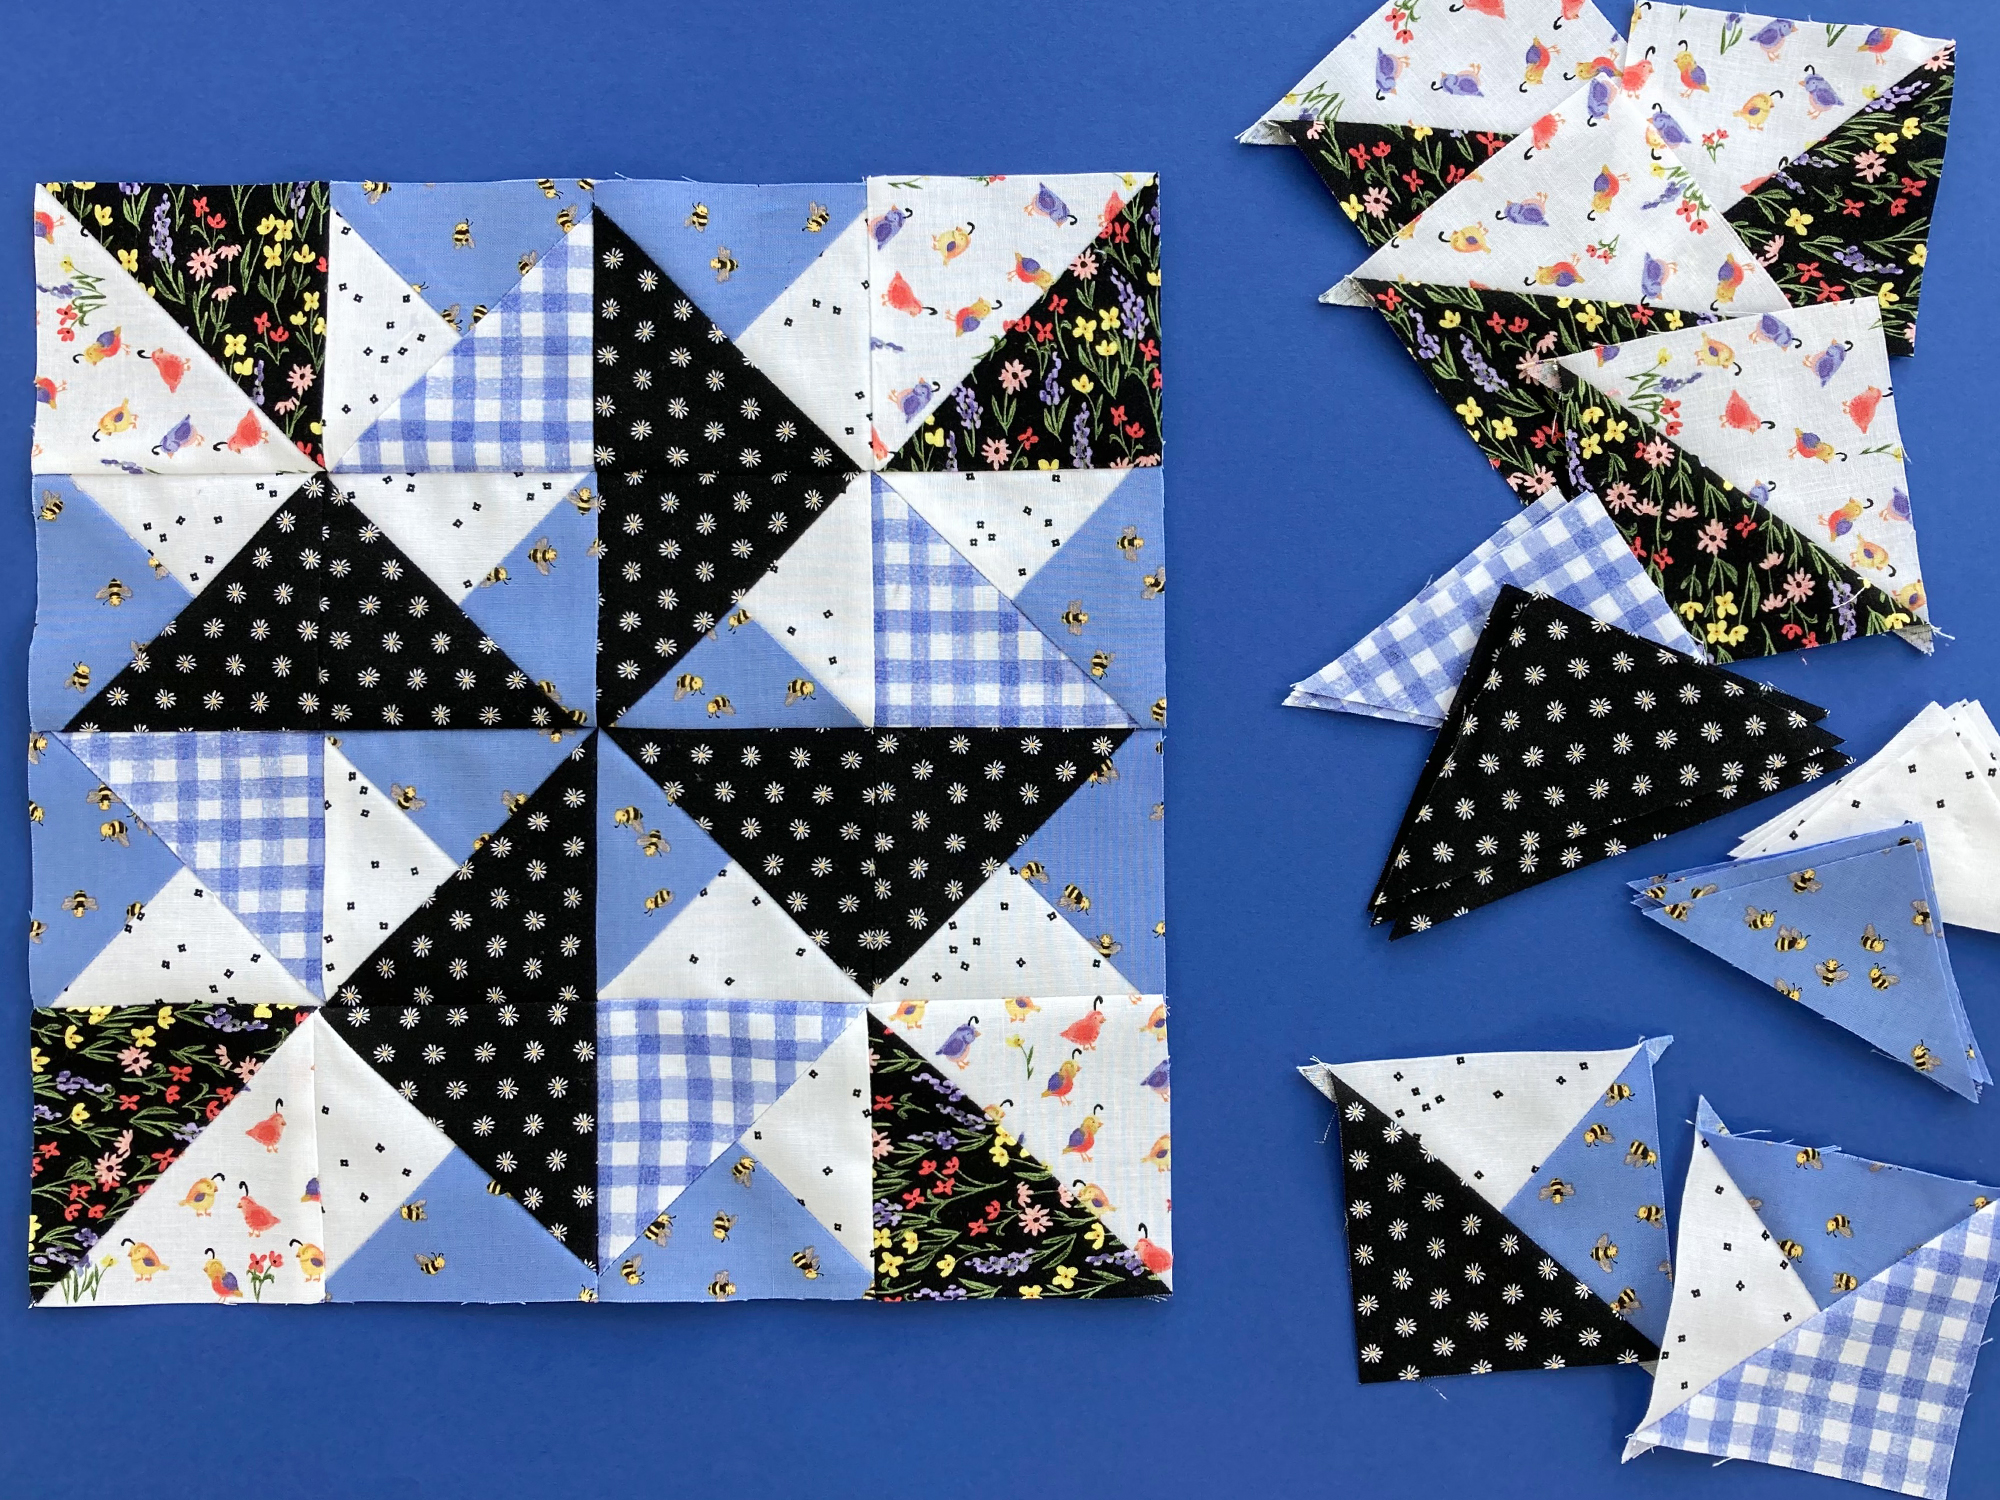 Block 5 made with blue gingham and floral fabric from Riley Blake Designs